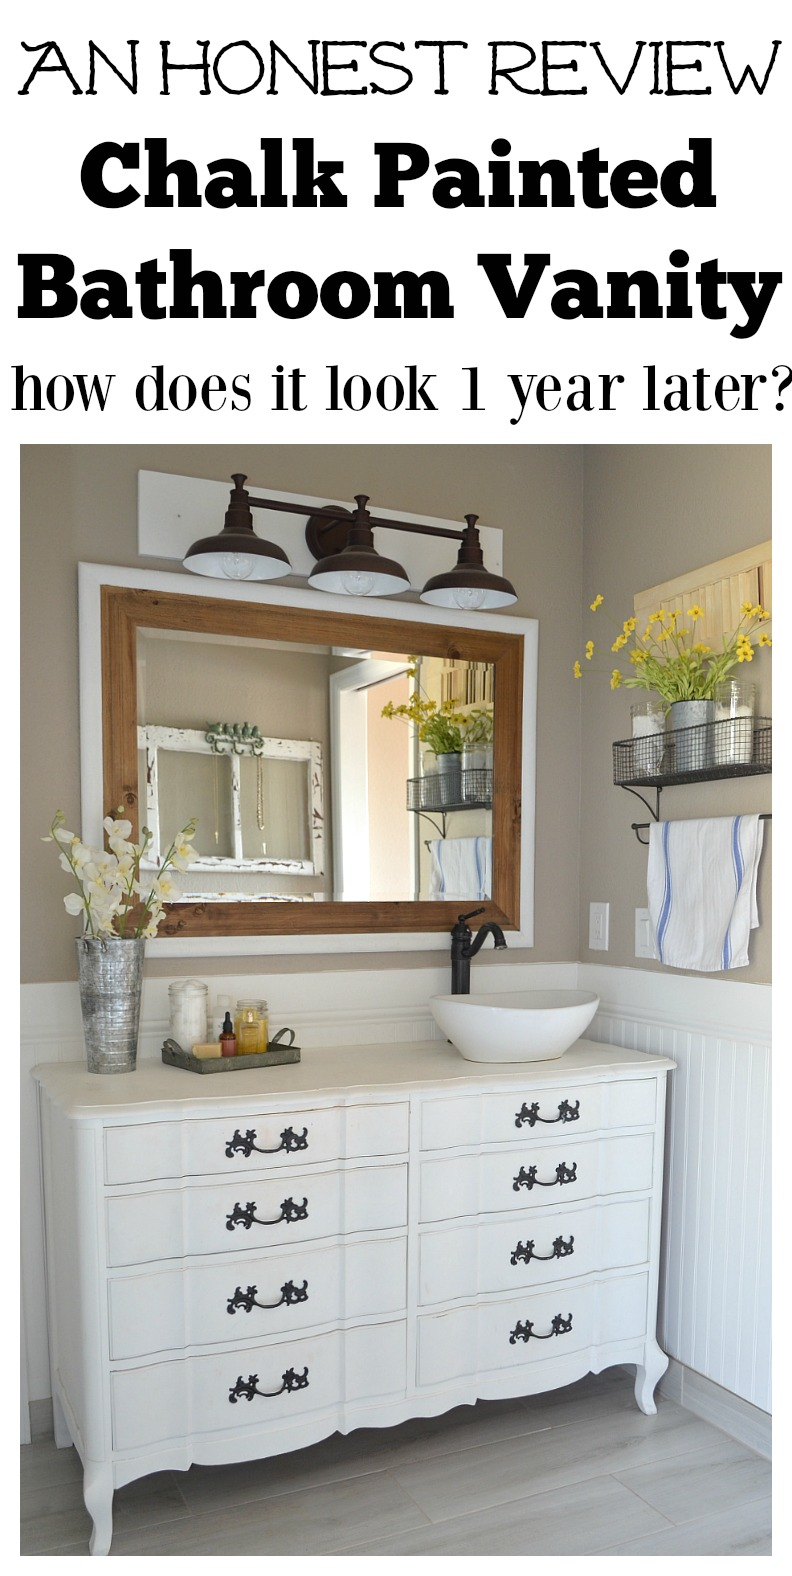 An Honest Review Of Chalk Painted Bathroom Vanities. Full Review After 1  Year Of Use